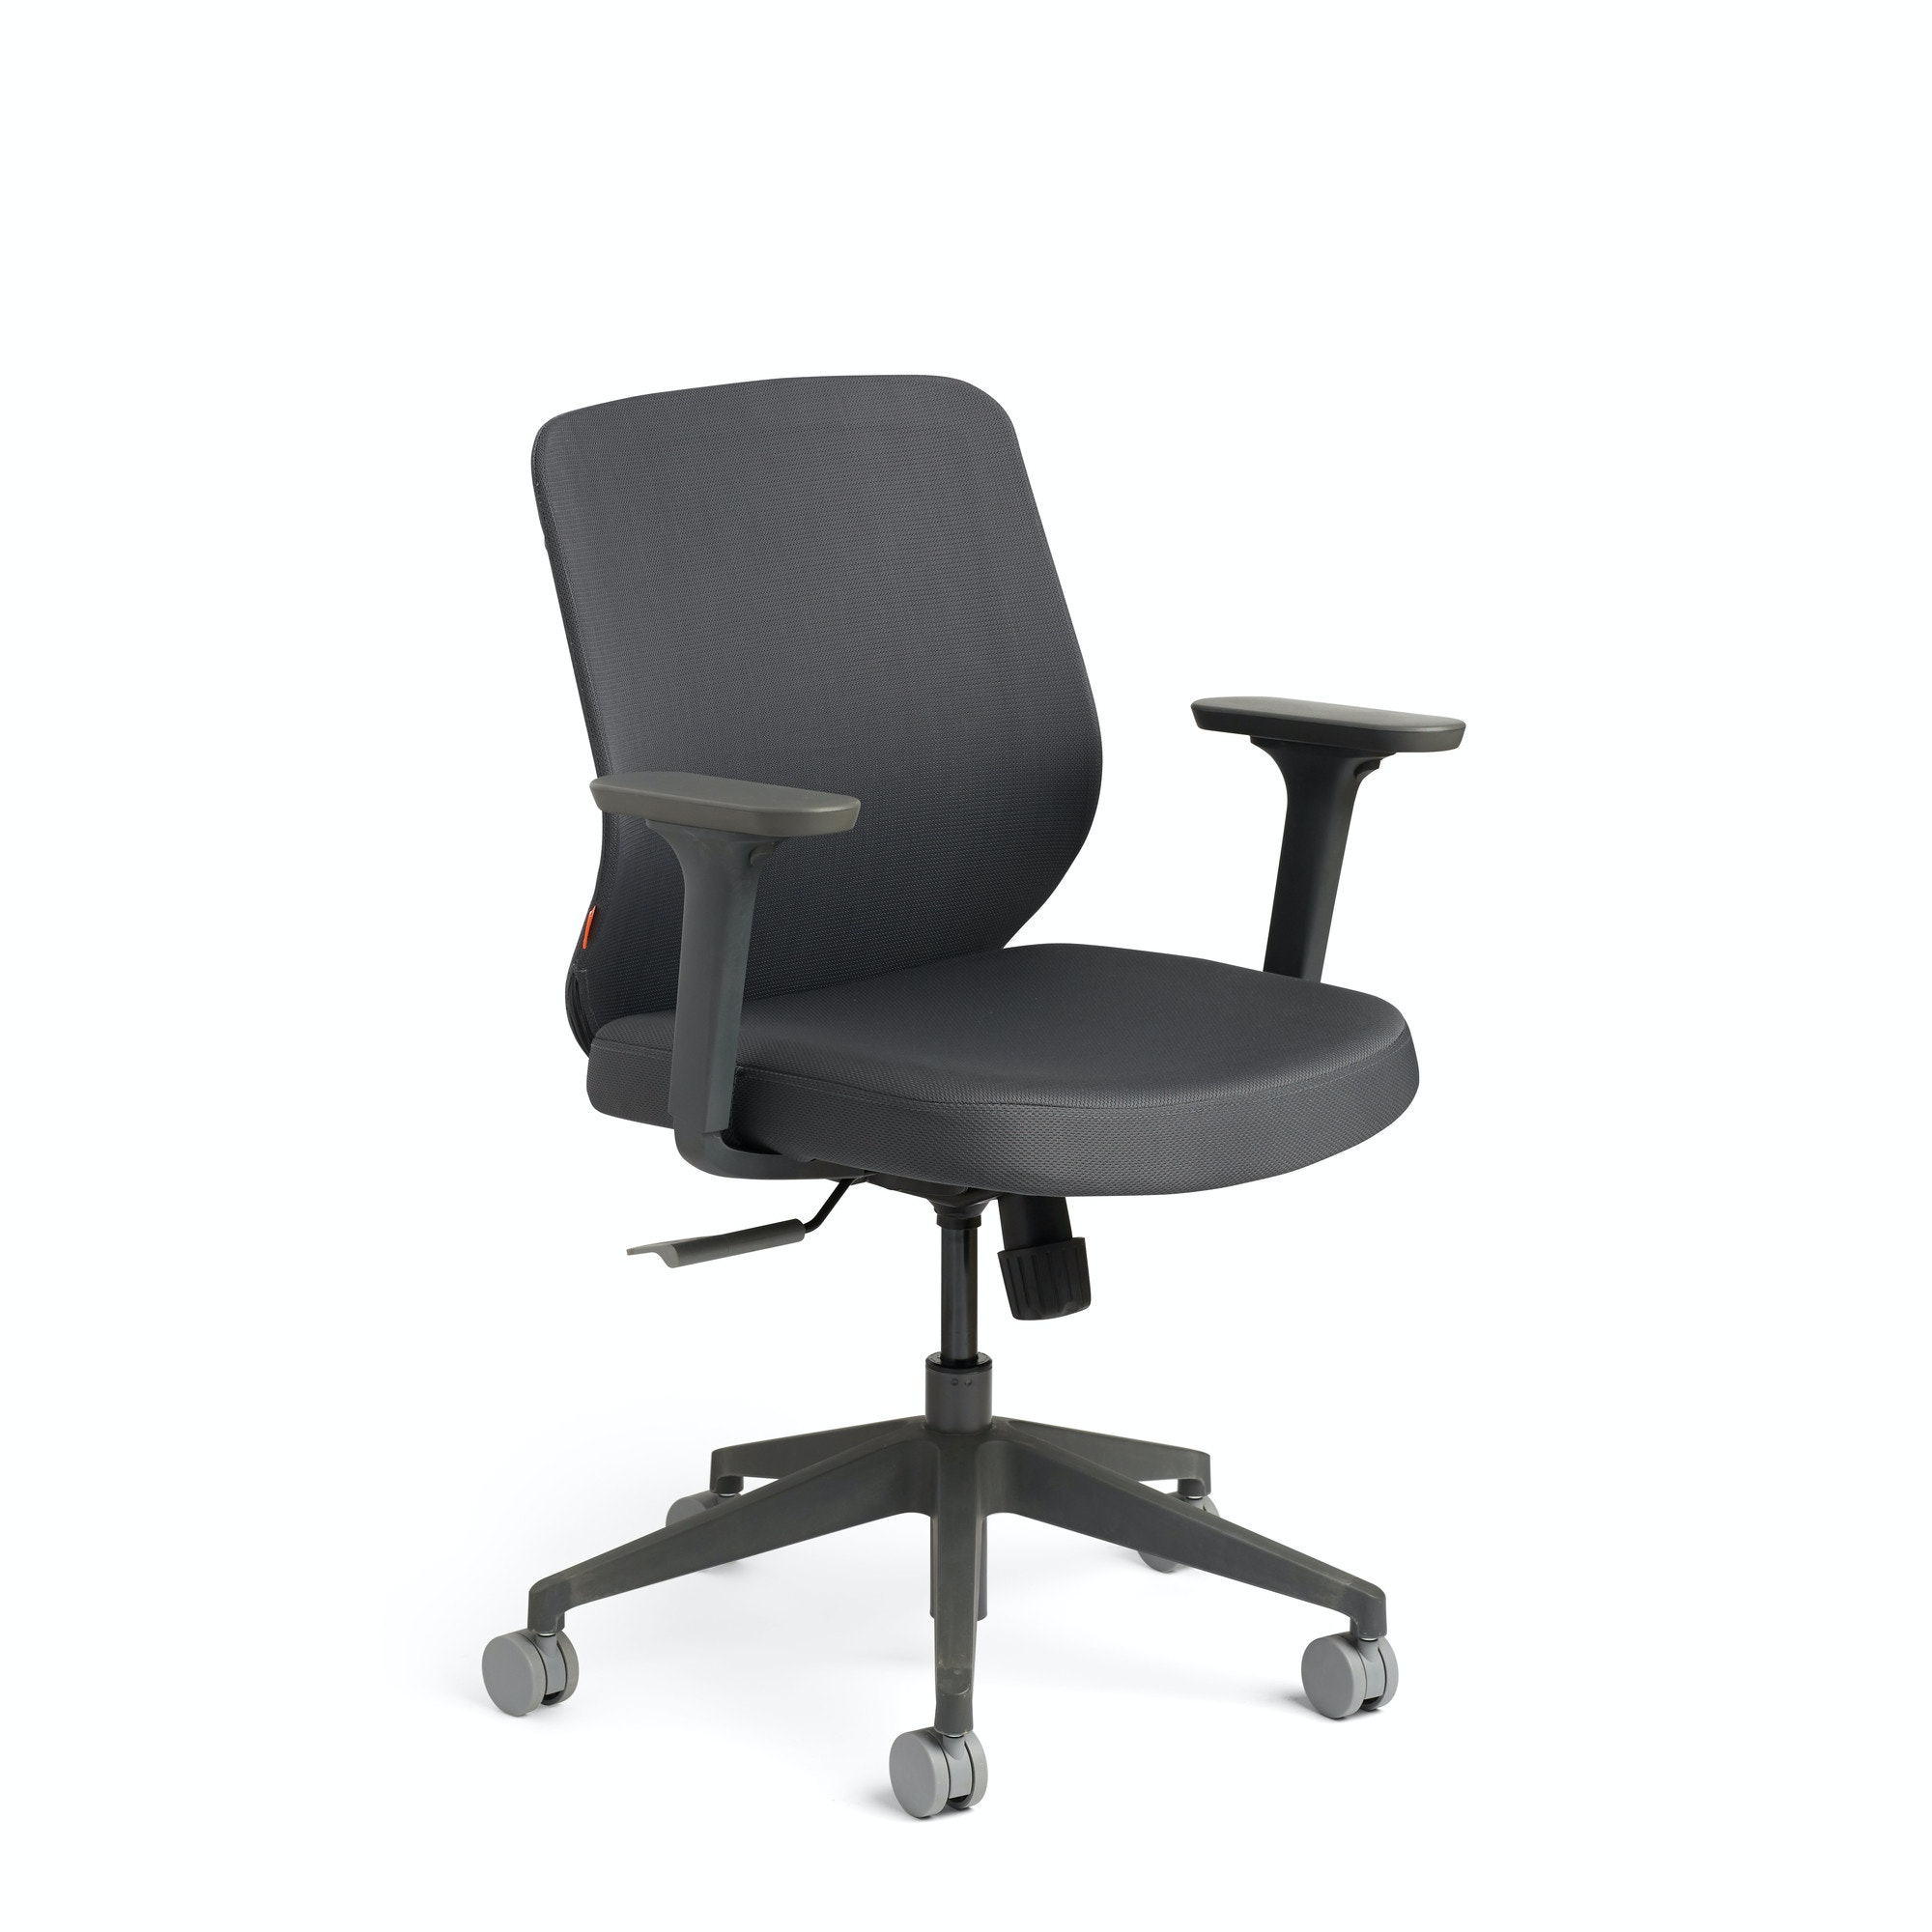 Office Chairs, Computer Desk U0026 Home Office | Office Furniture | Poppin